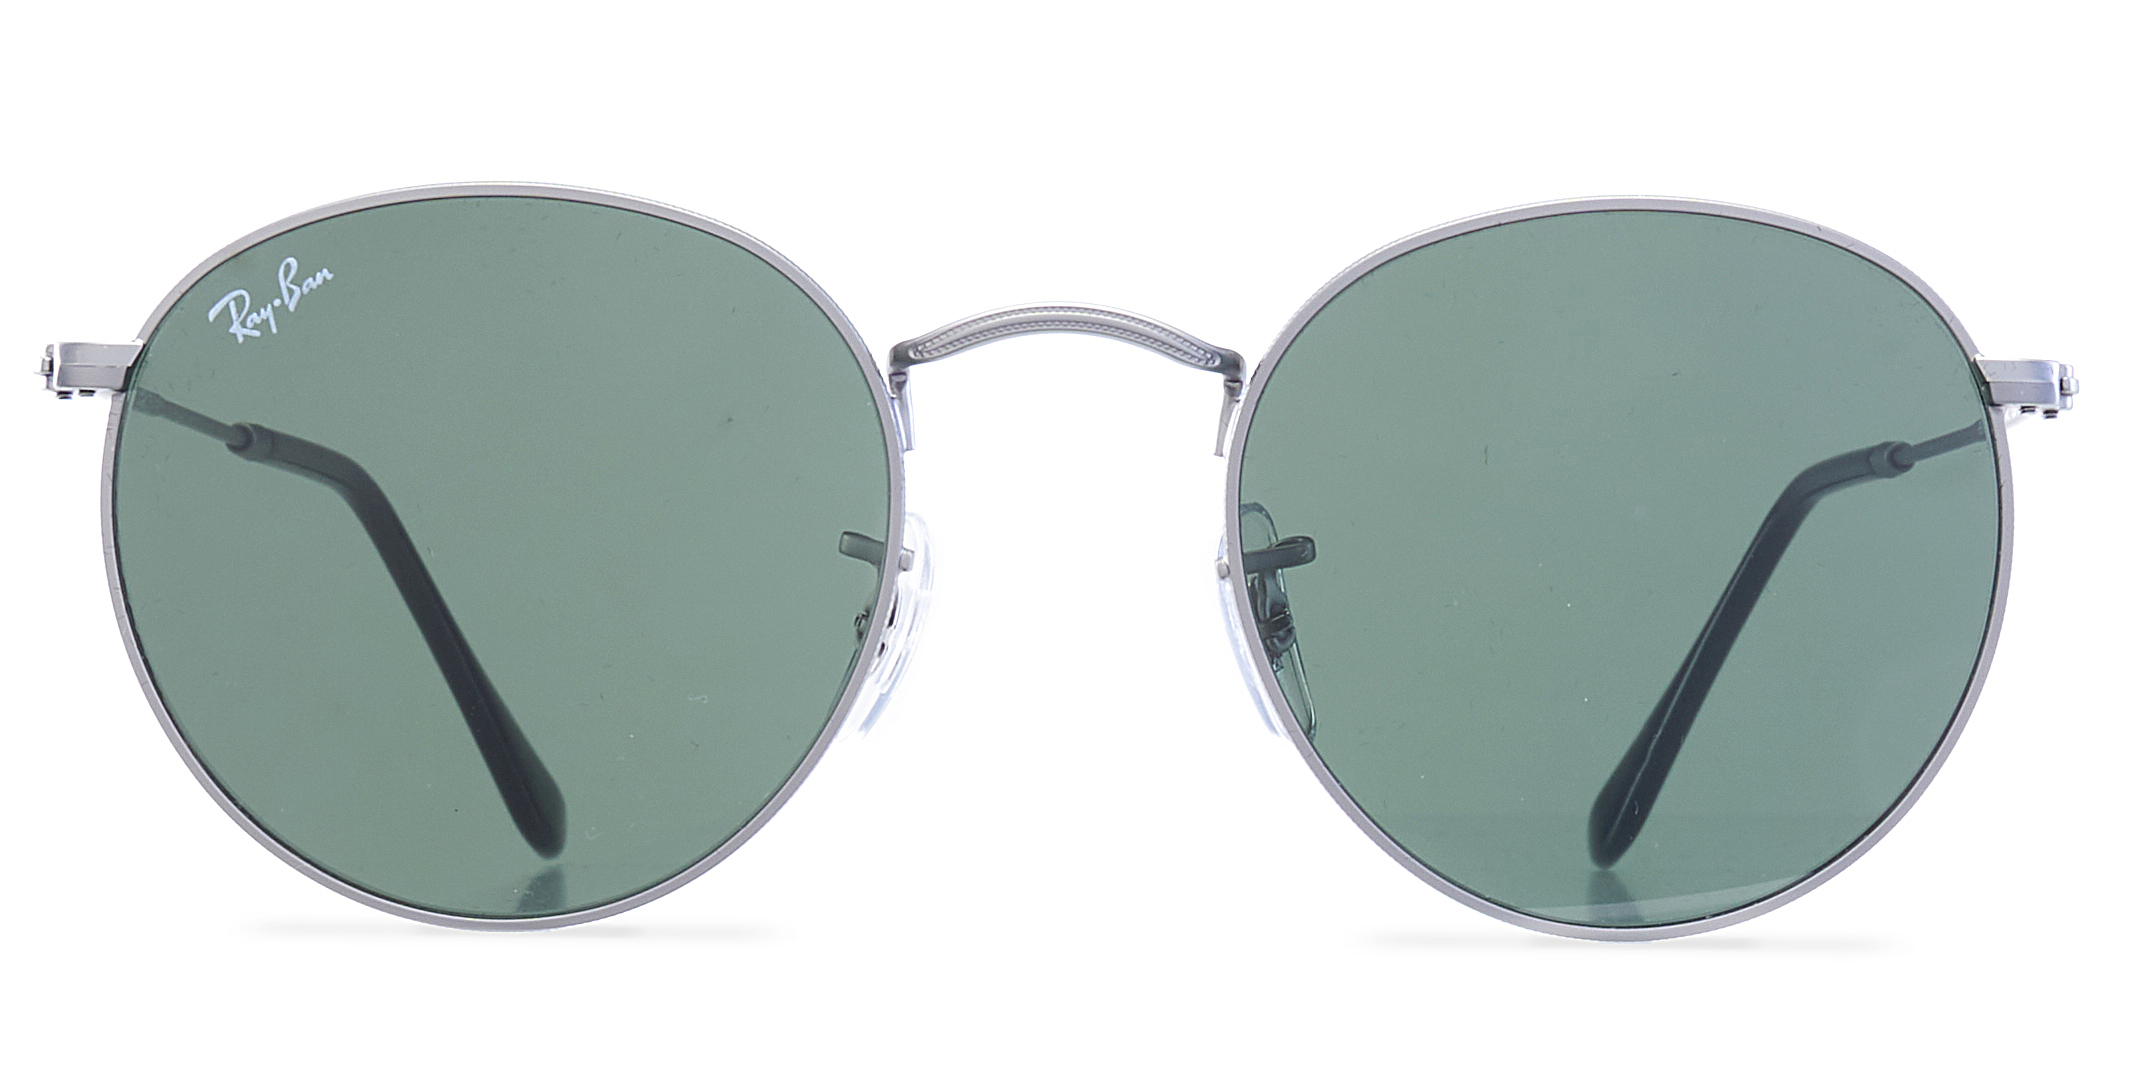 Ray Ban Sunglasses RB3447 029 50